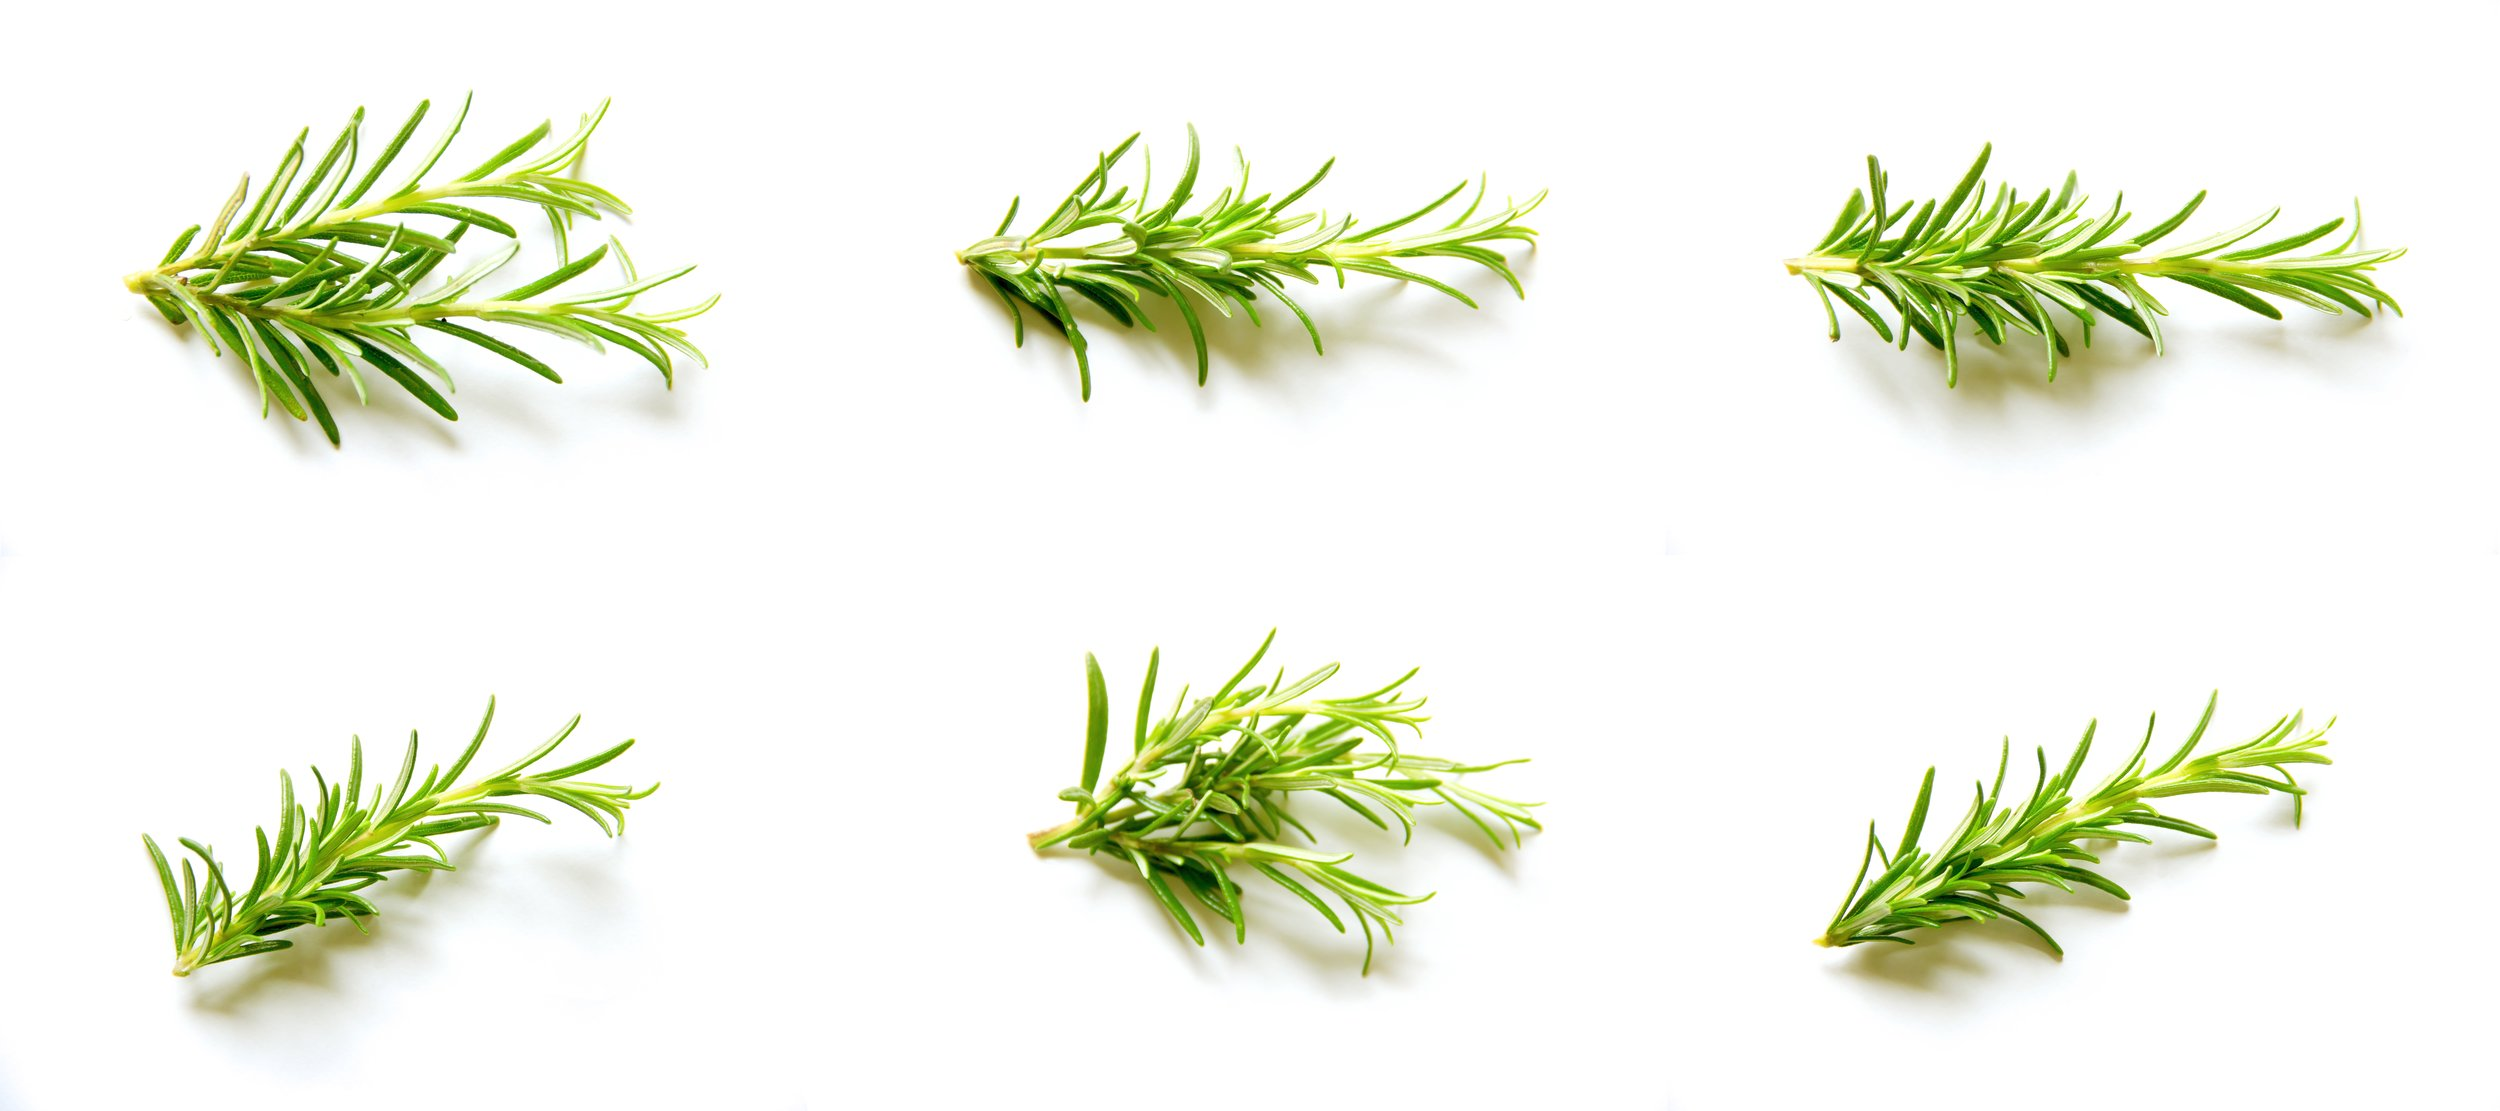 ROSEMARY HERBAL RINSE   ROSEMARY HAS A LONG HISTORY AS A STRONG STIMULANT FOR HAIR GROWTH.  IT FEEDS THE HAIR ROOT.   IT IS ALSO KNOWN AS THE HERB OF REMEMBERANCE - GOOD FOR THE MEMORY AND MENTAL CLARITY.